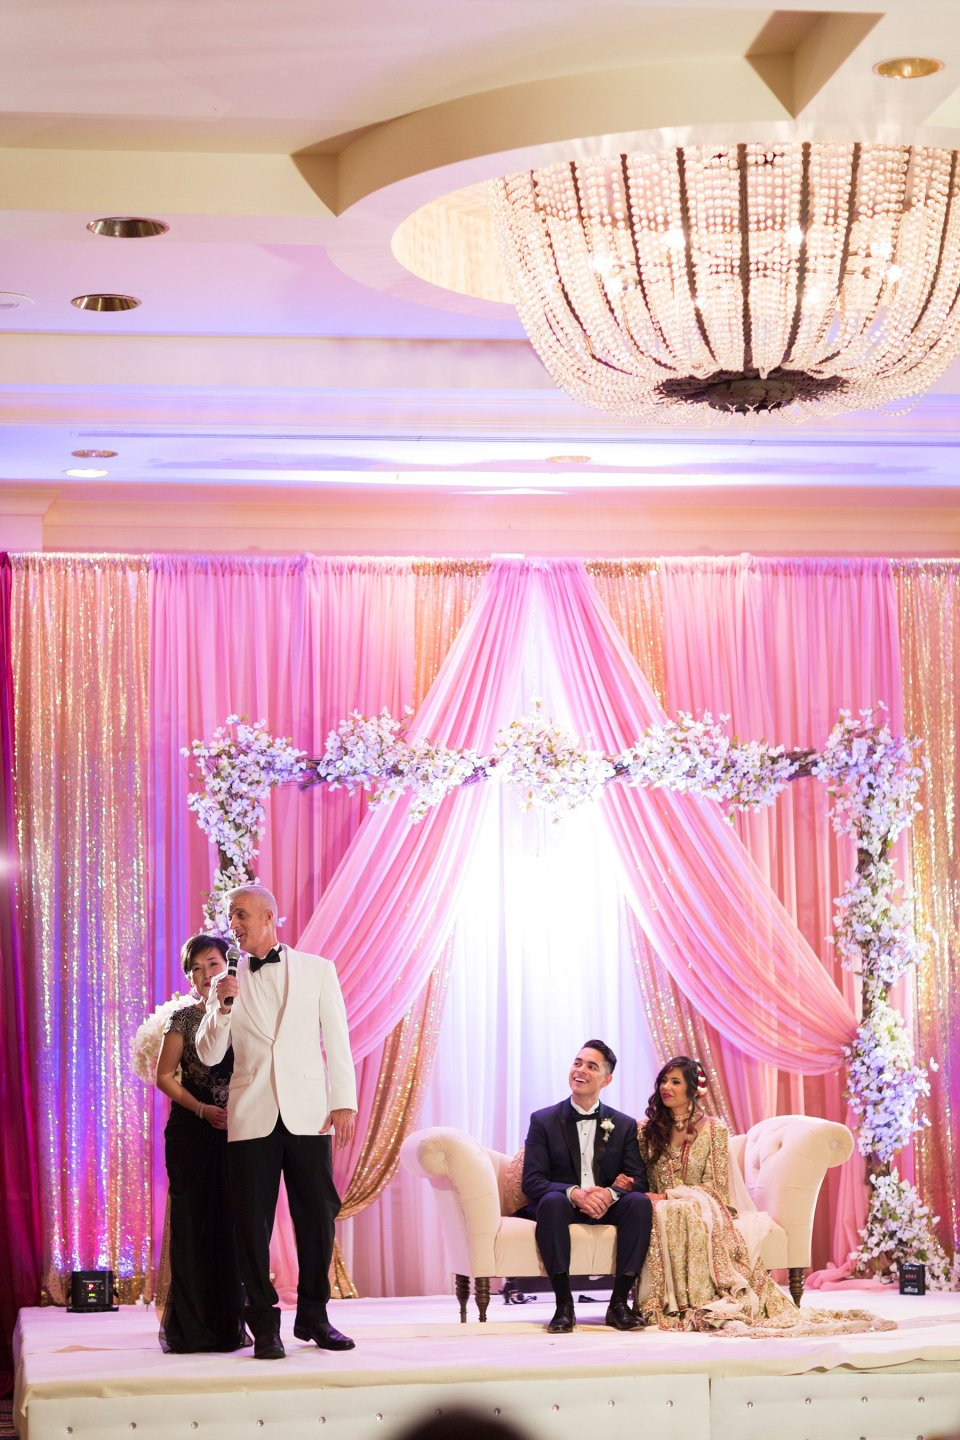 Jacksonville Pakistani Wedding | Bri Cibene Photography | www.bricibene.com